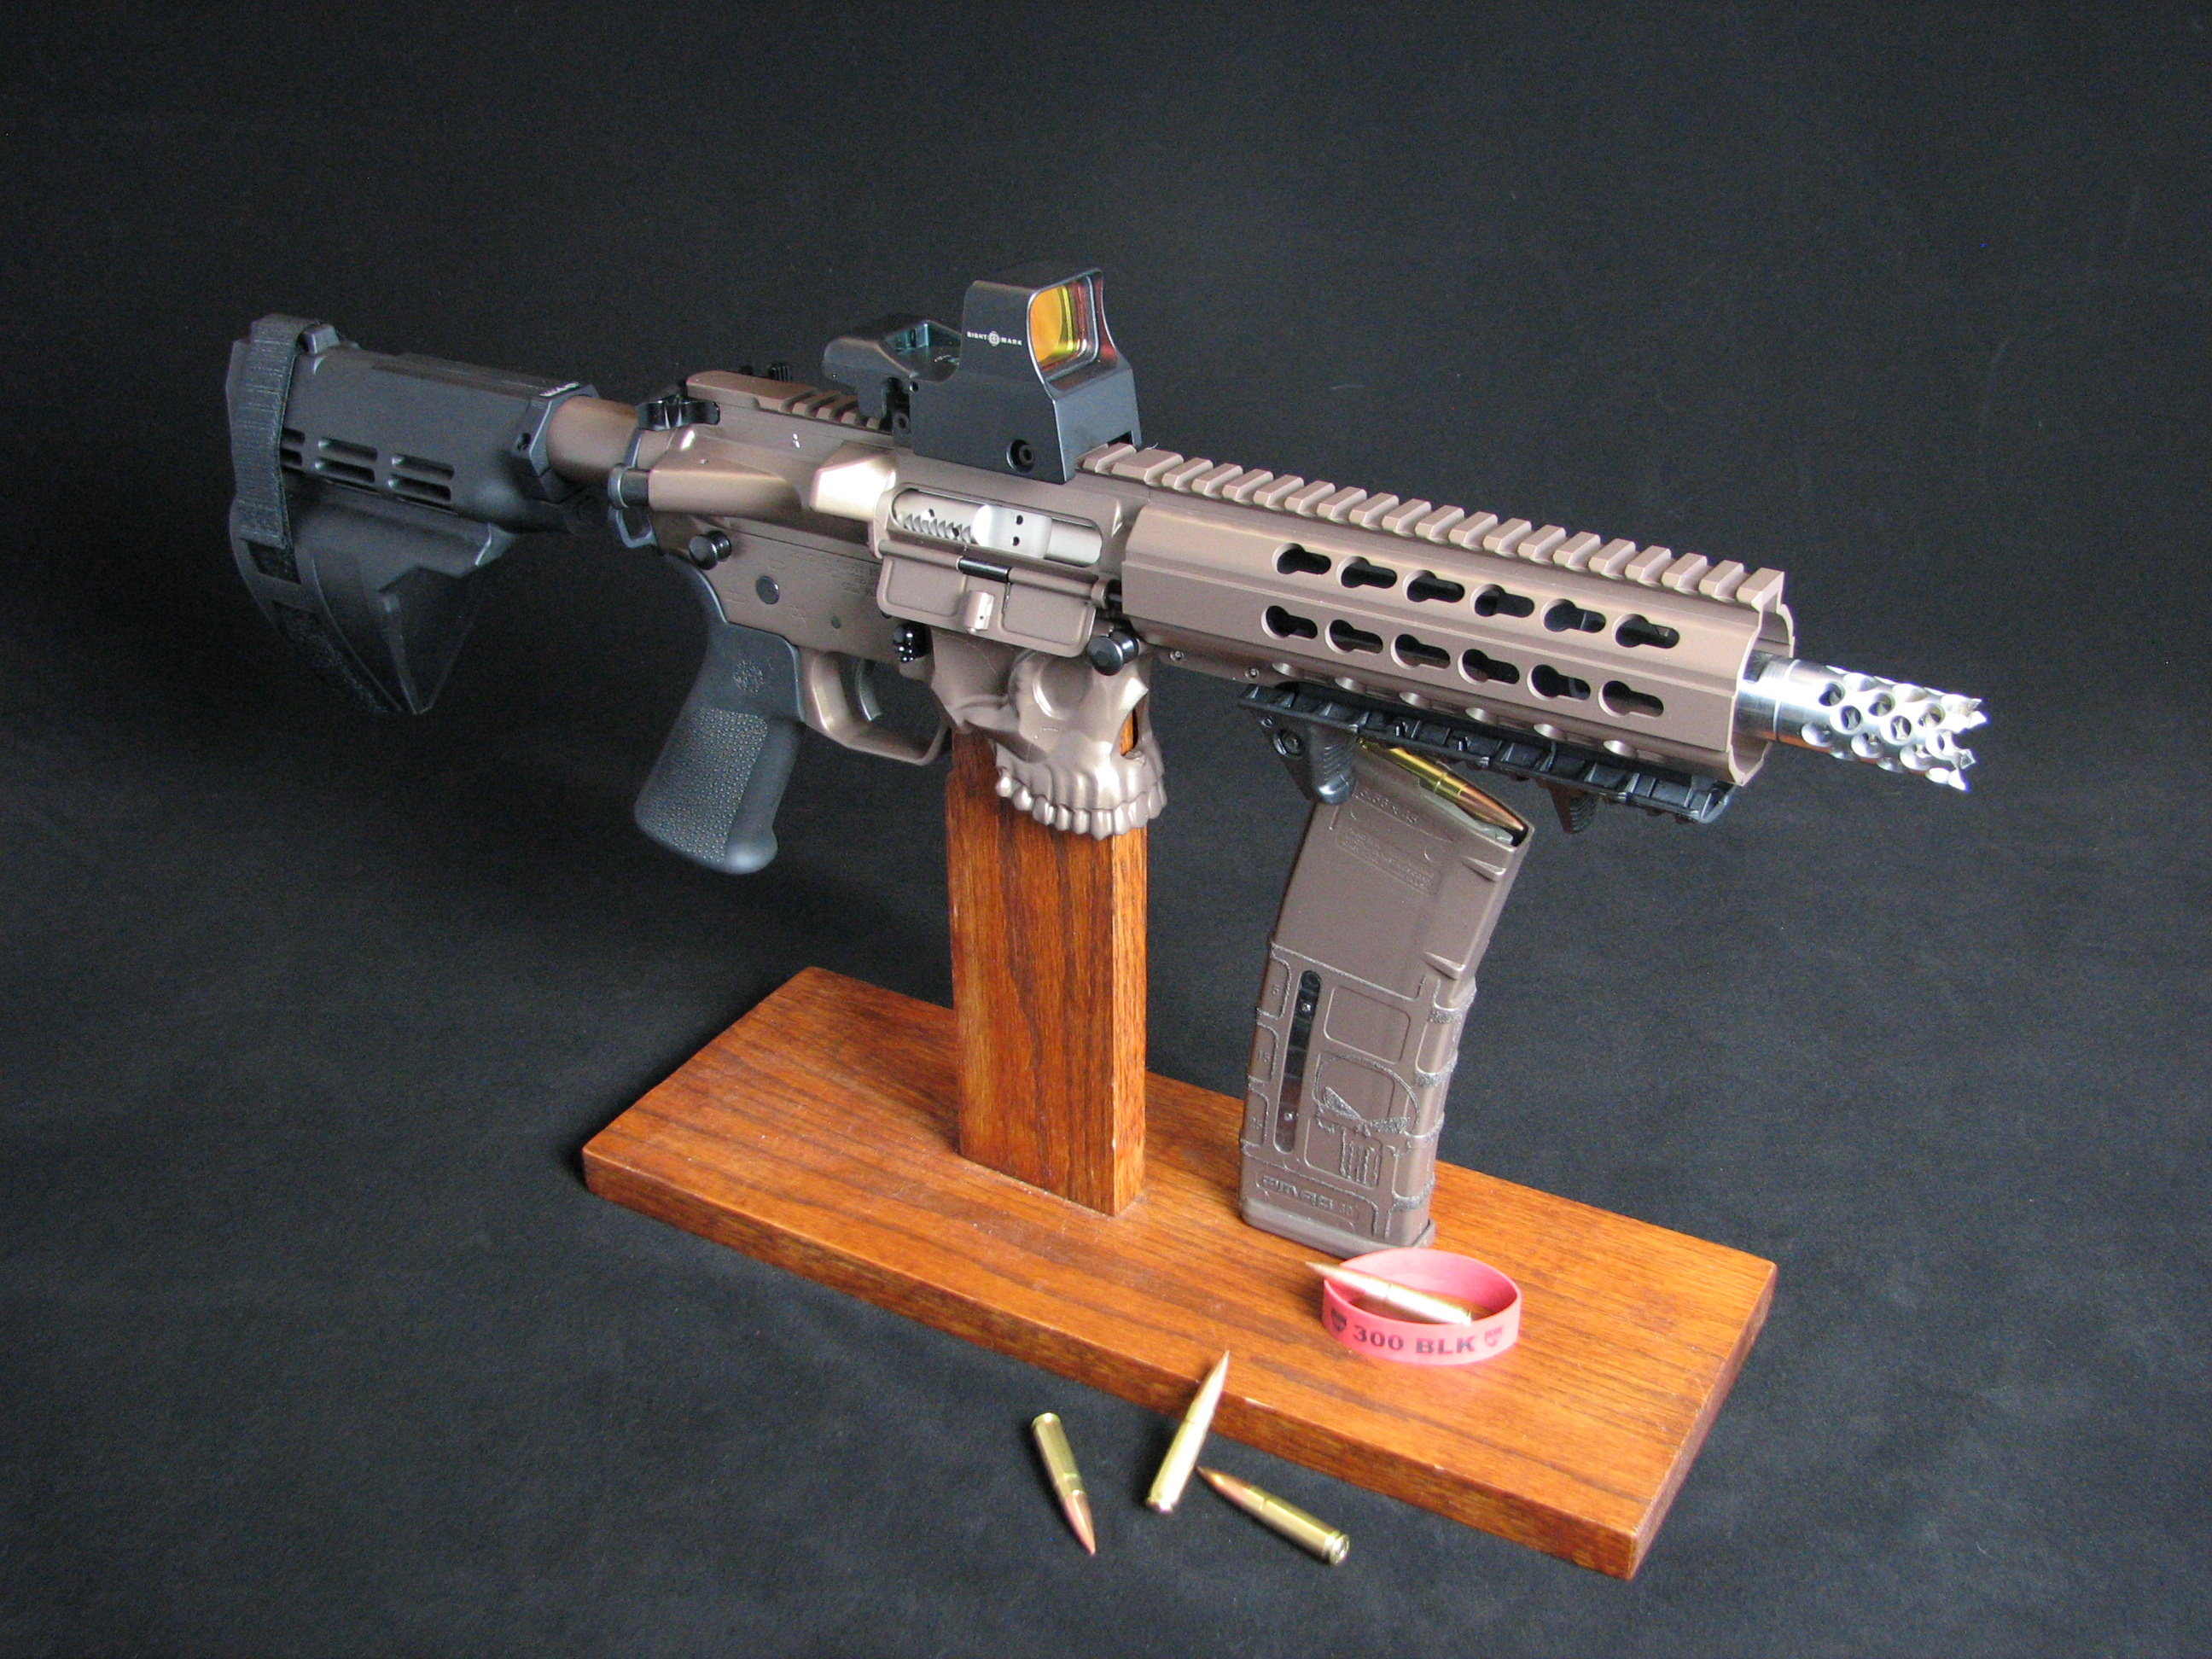 The Jack 300 Custom Ar Blackout Pistol Jawsarms Com